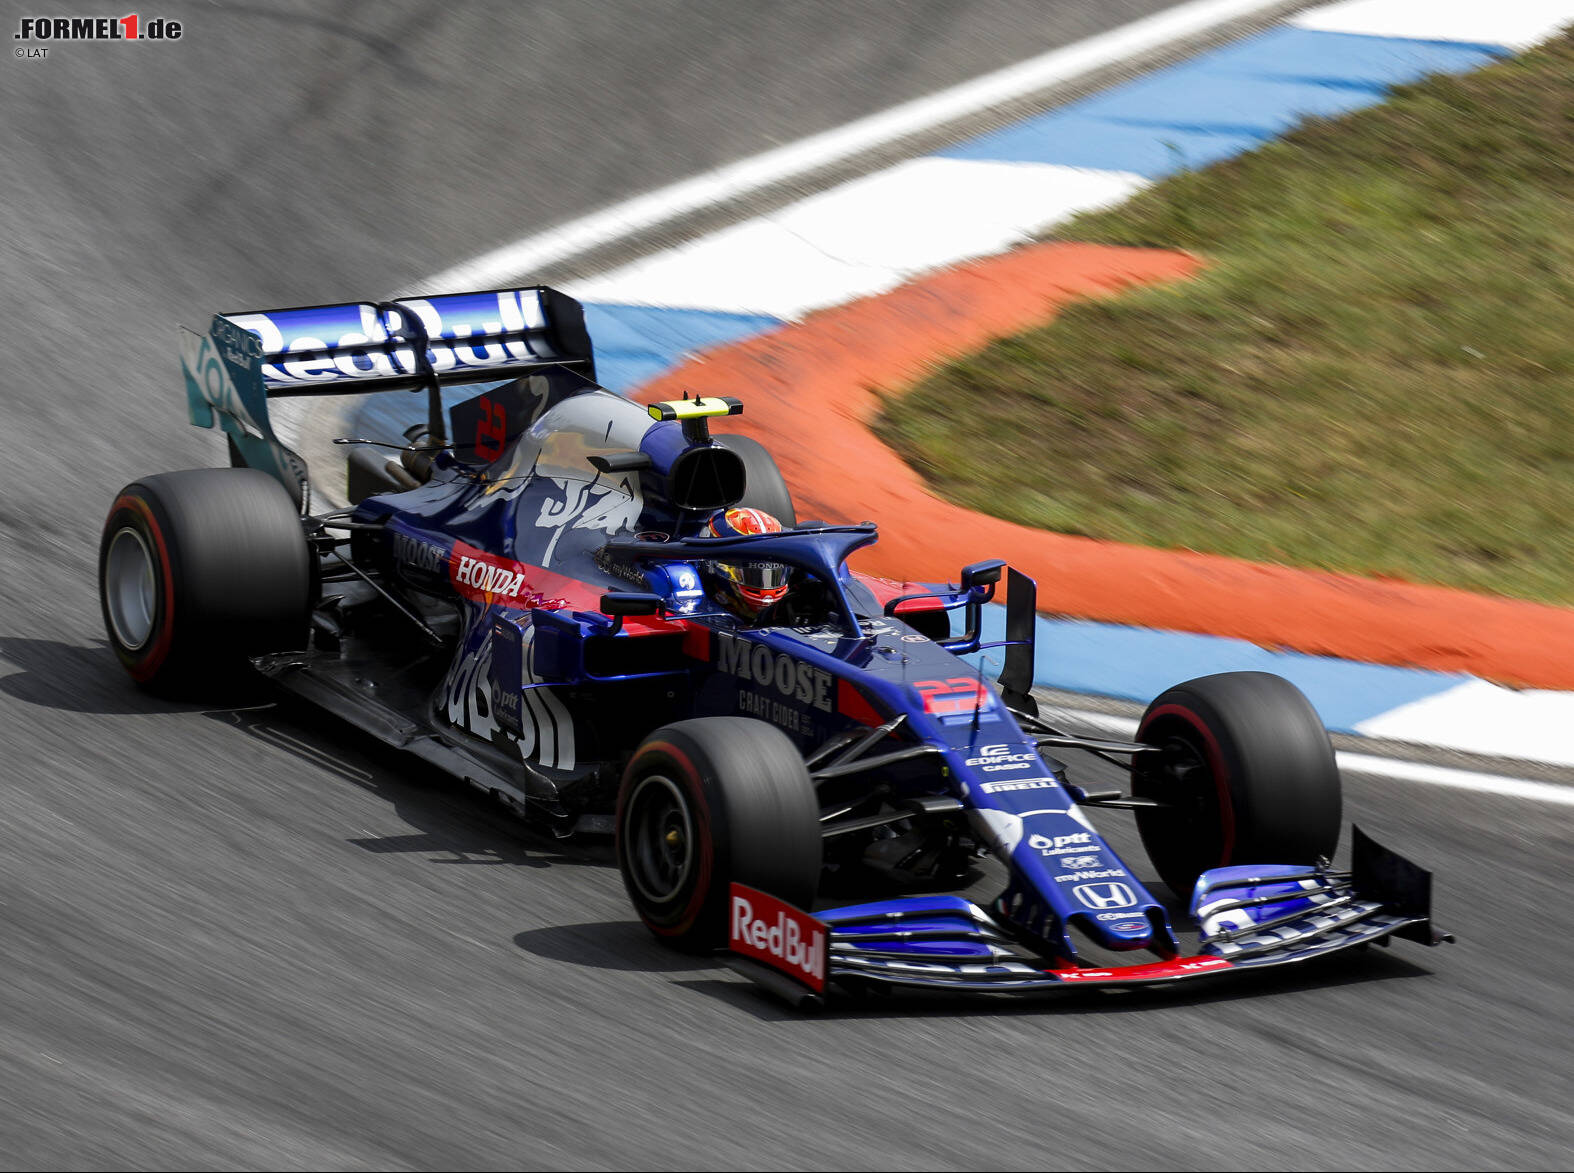 toro rosso hadert hockenheim update funktioniert nicht. Black Bedroom Furniture Sets. Home Design Ideas